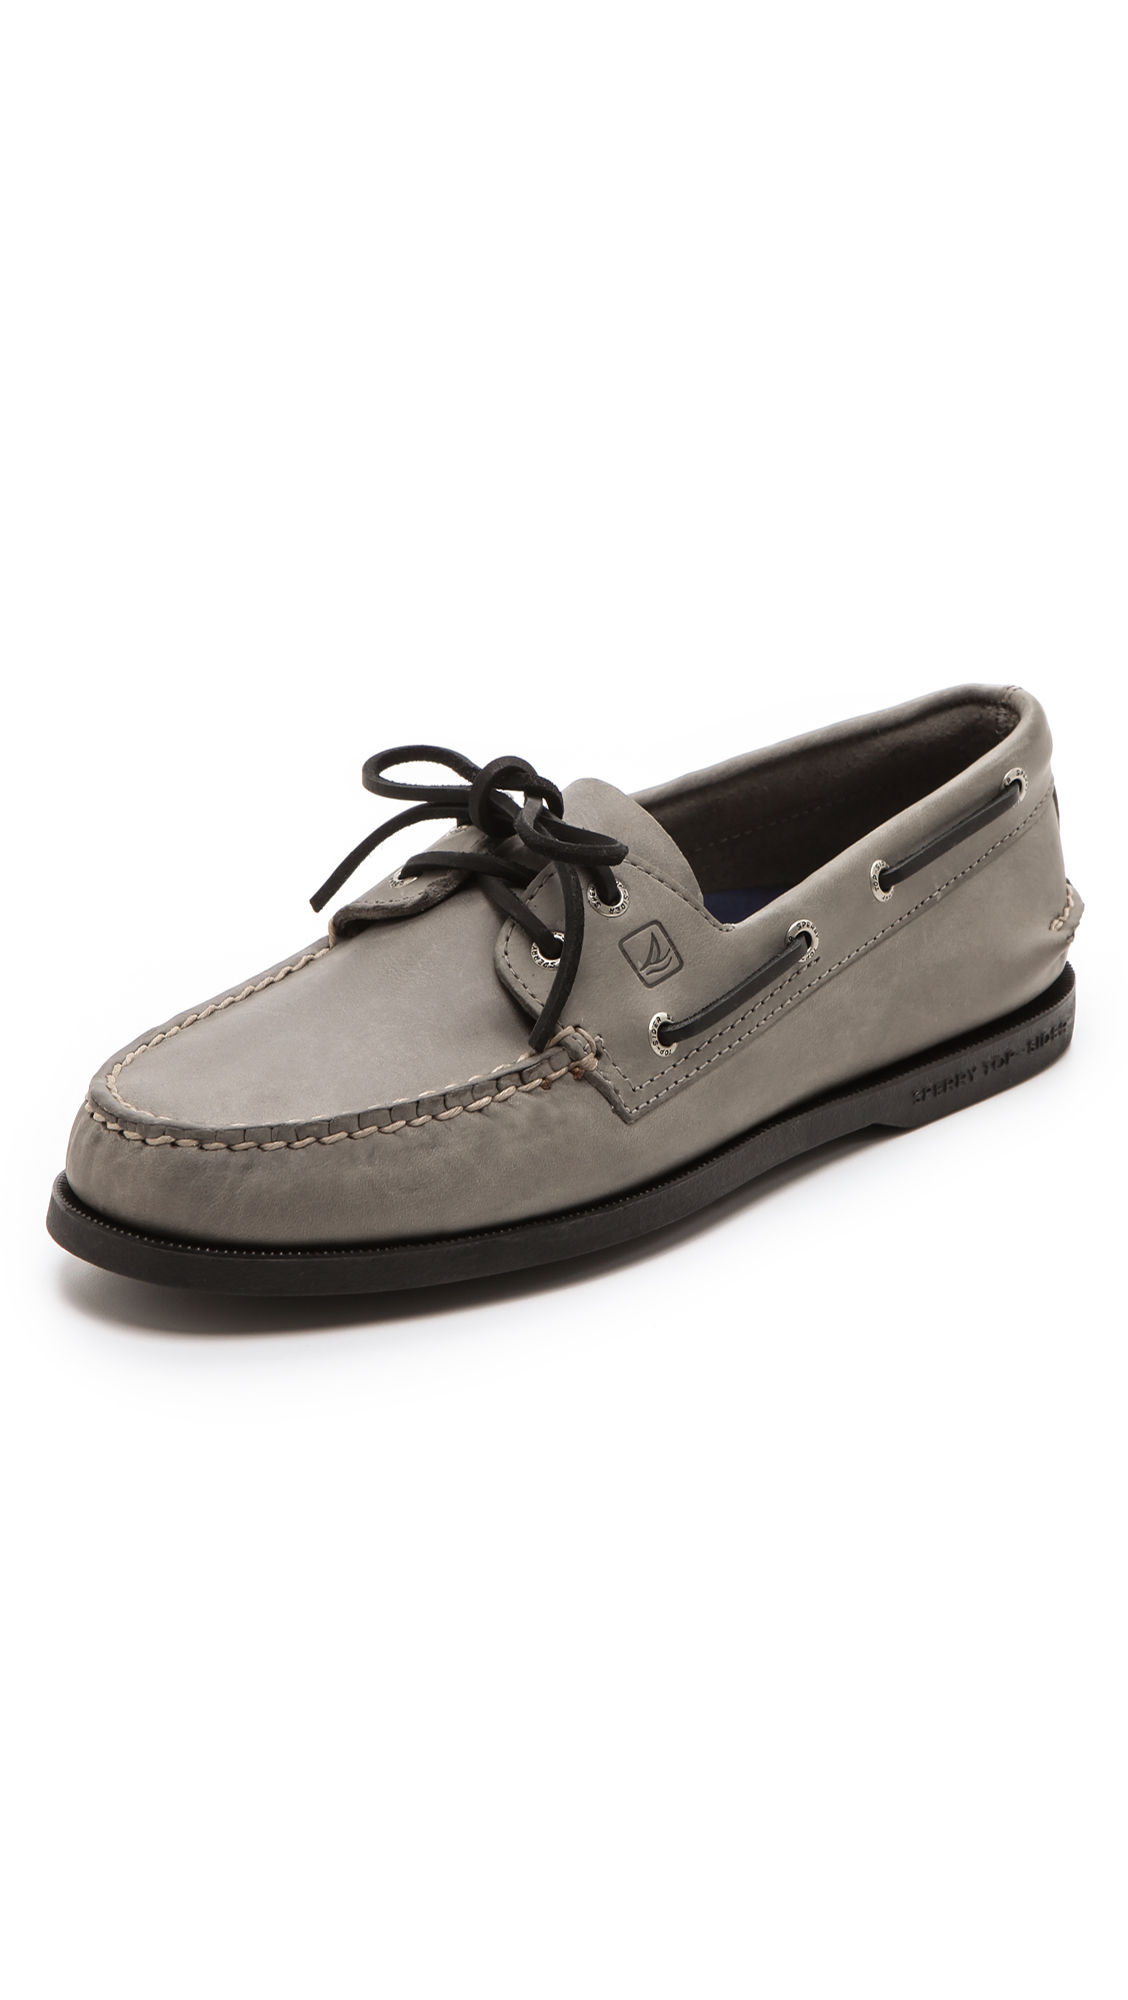 Sperry A O Boat Shoes Sizing